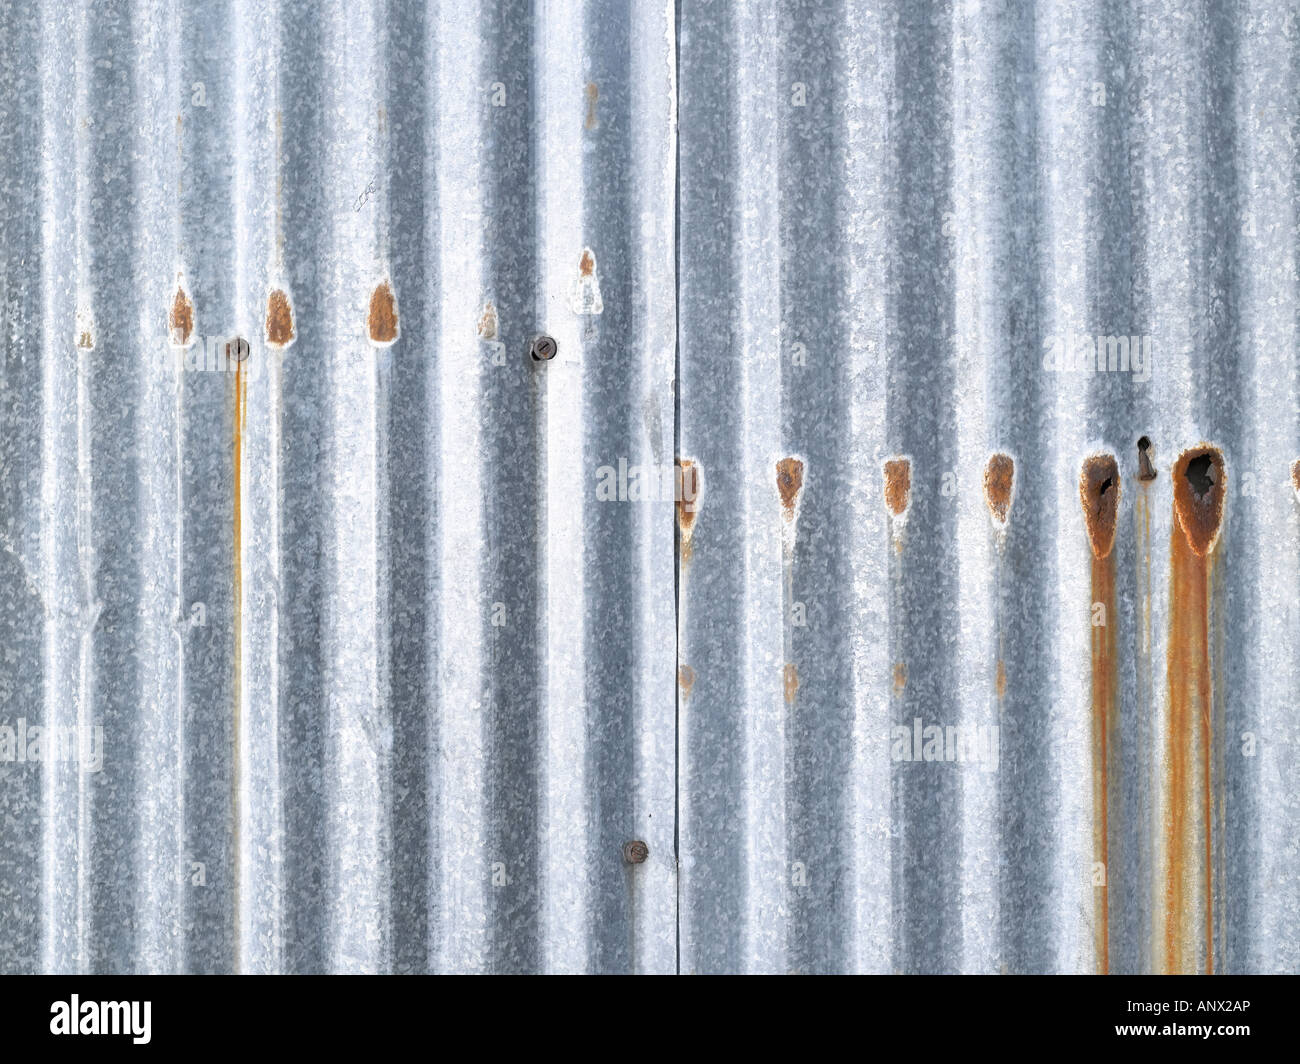 Wellblech Stockbild